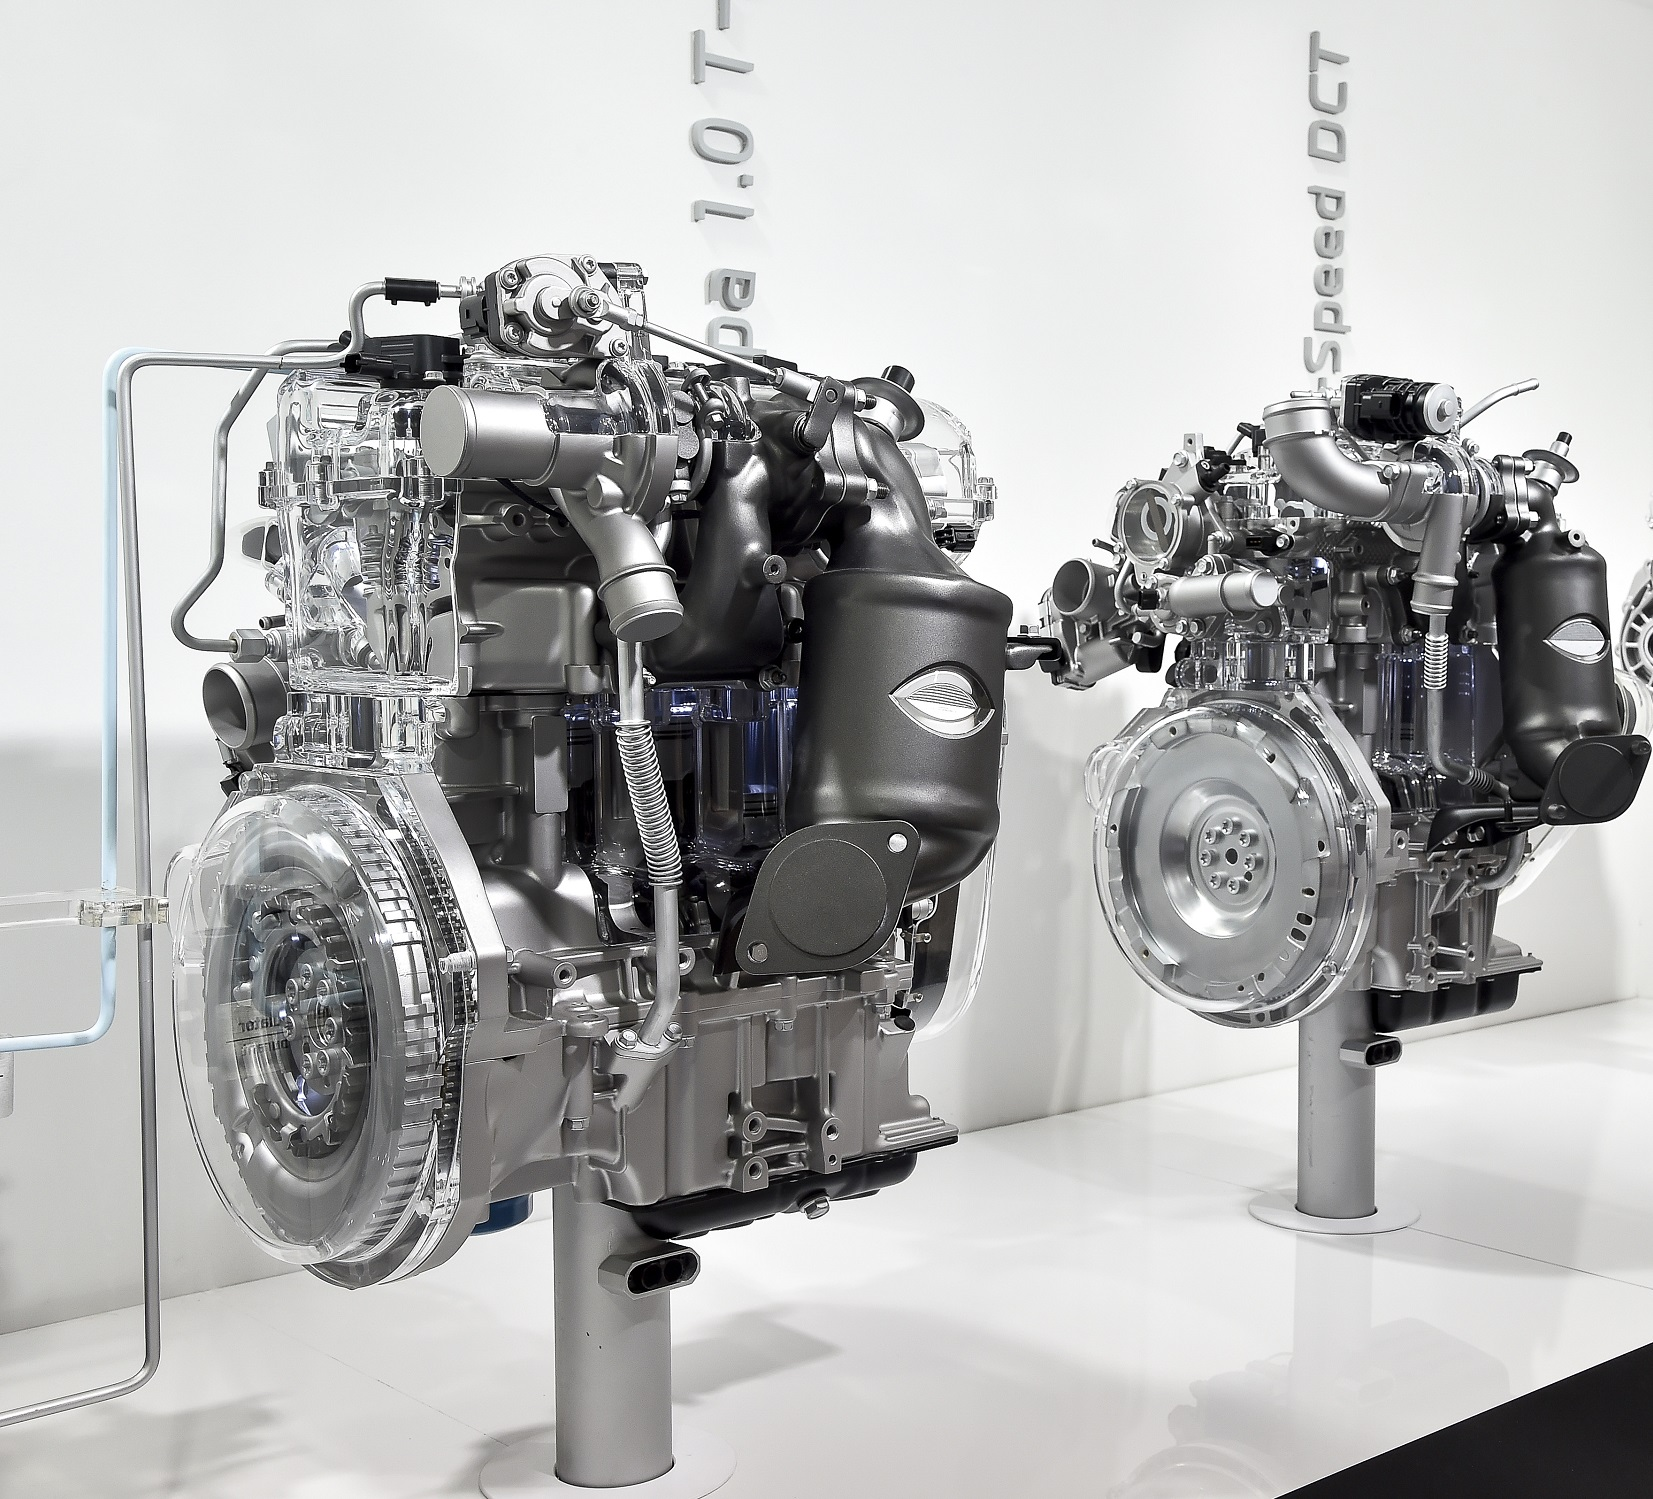 The new Hyundai gasoline engines generation